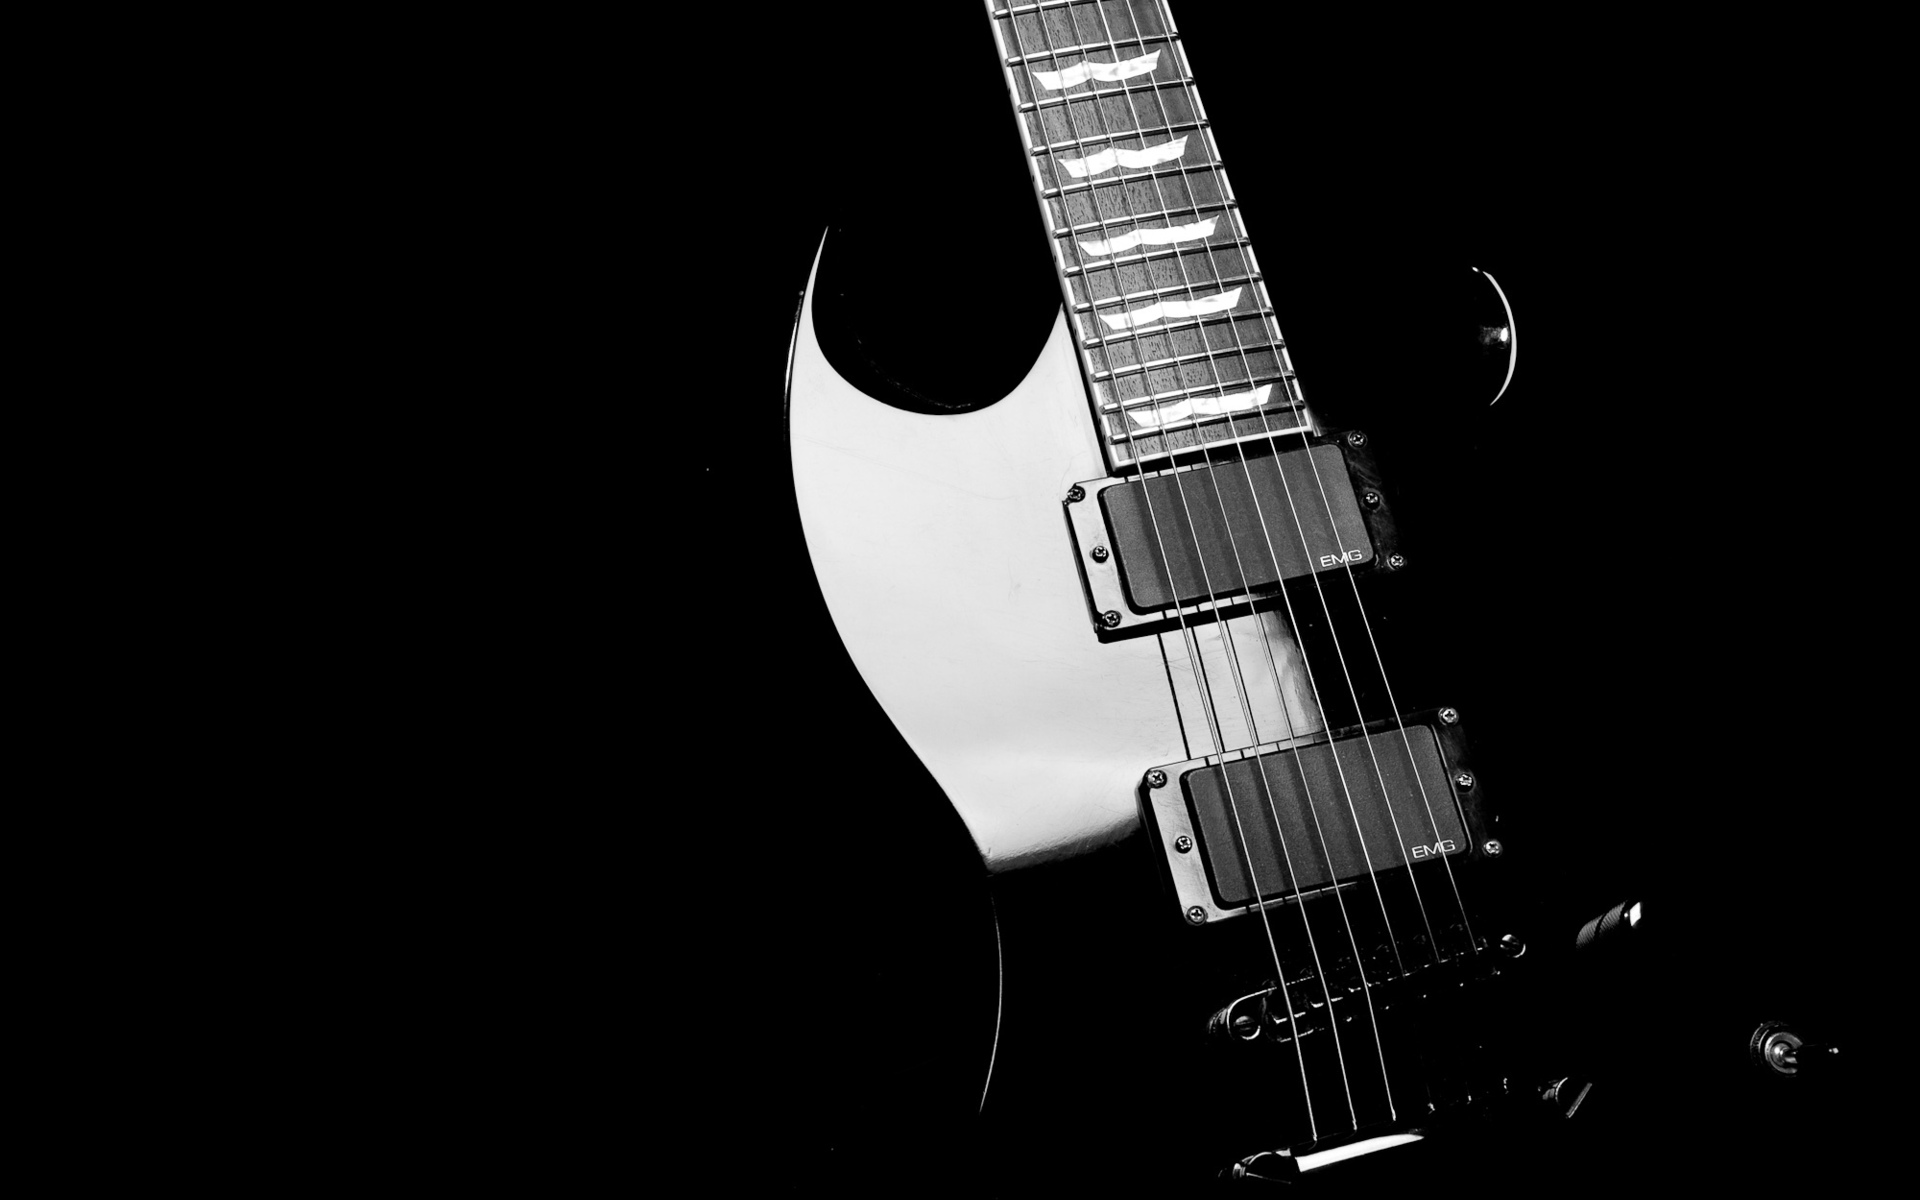 awesome guitar high quality wallpaper